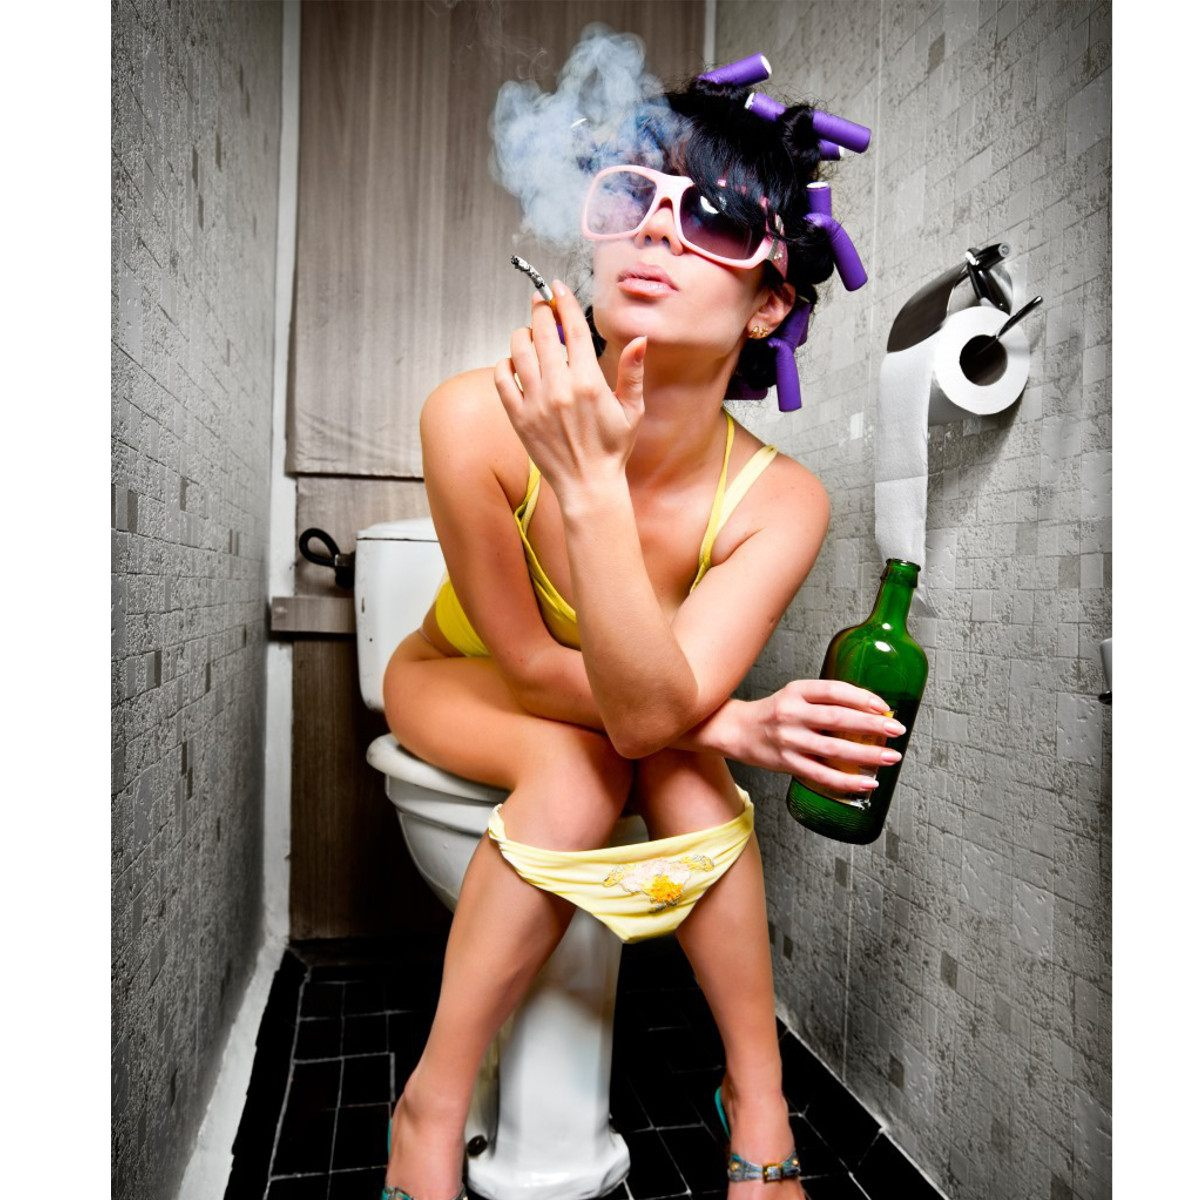 Girl IN TOILET Drinking and Smoking Picture red Print On FRAMED Canvas Wall Art